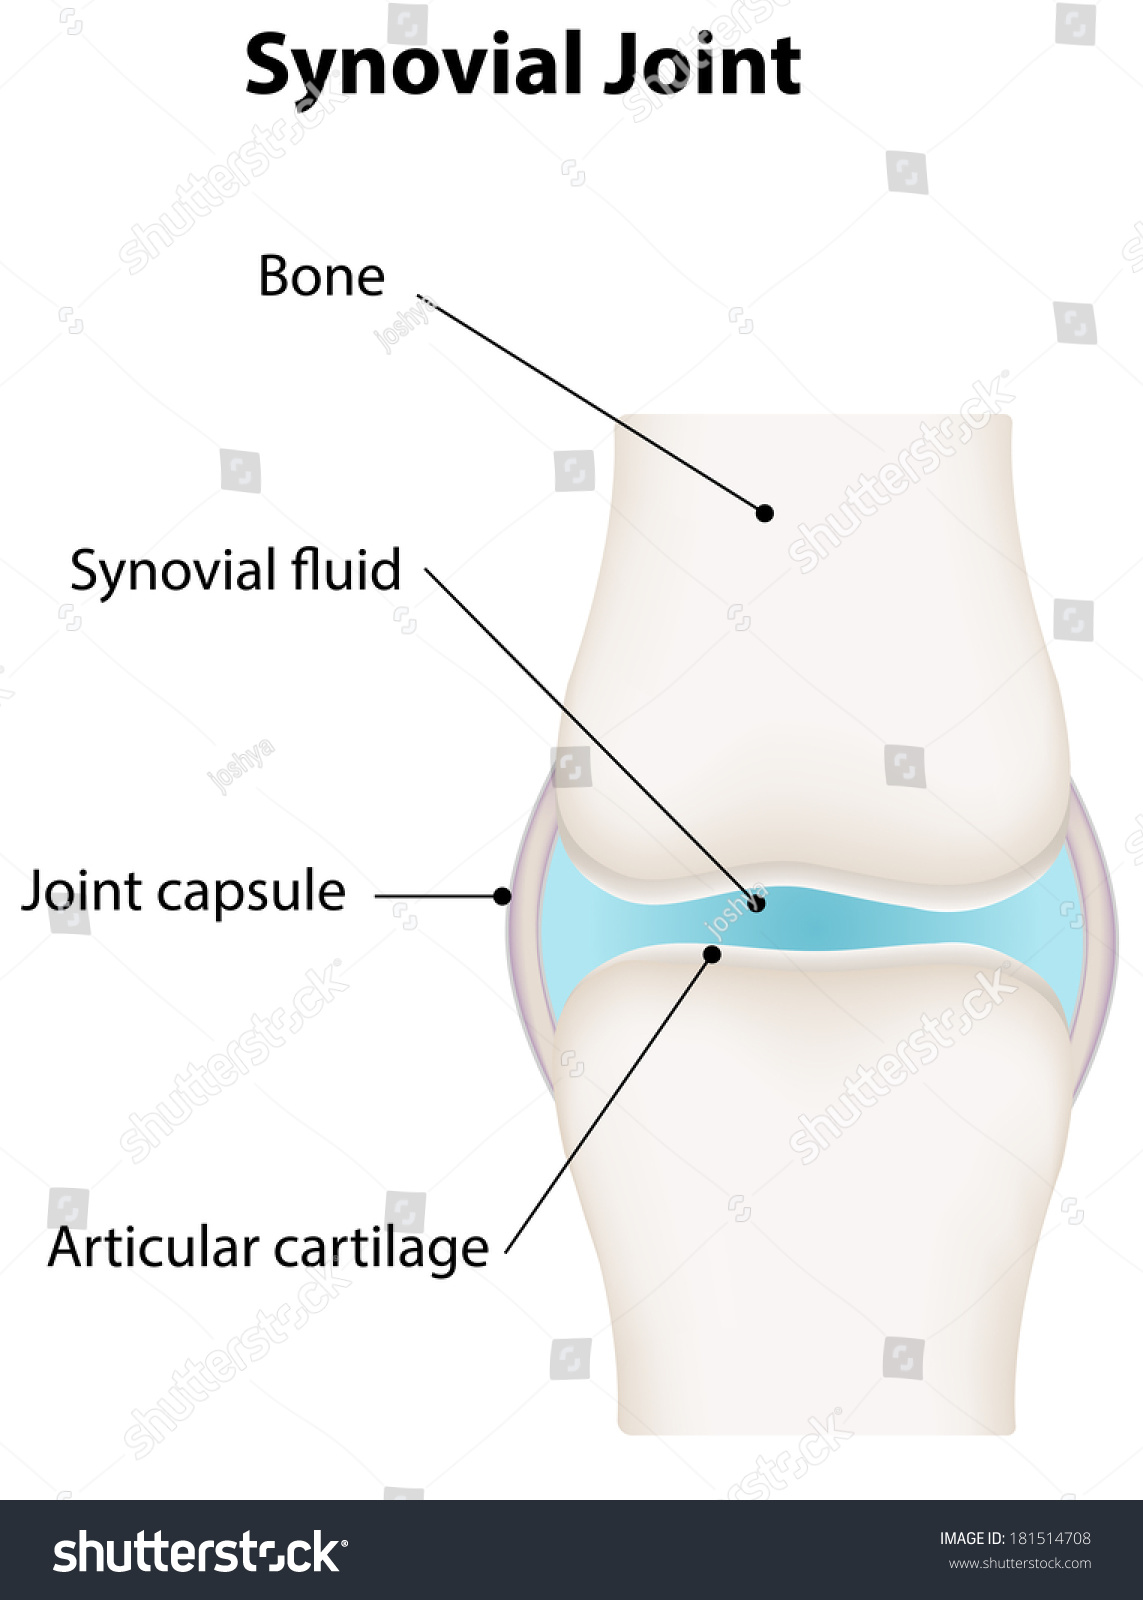 Synovial Joint Diagram Stock Vector Royalty Free 181514708